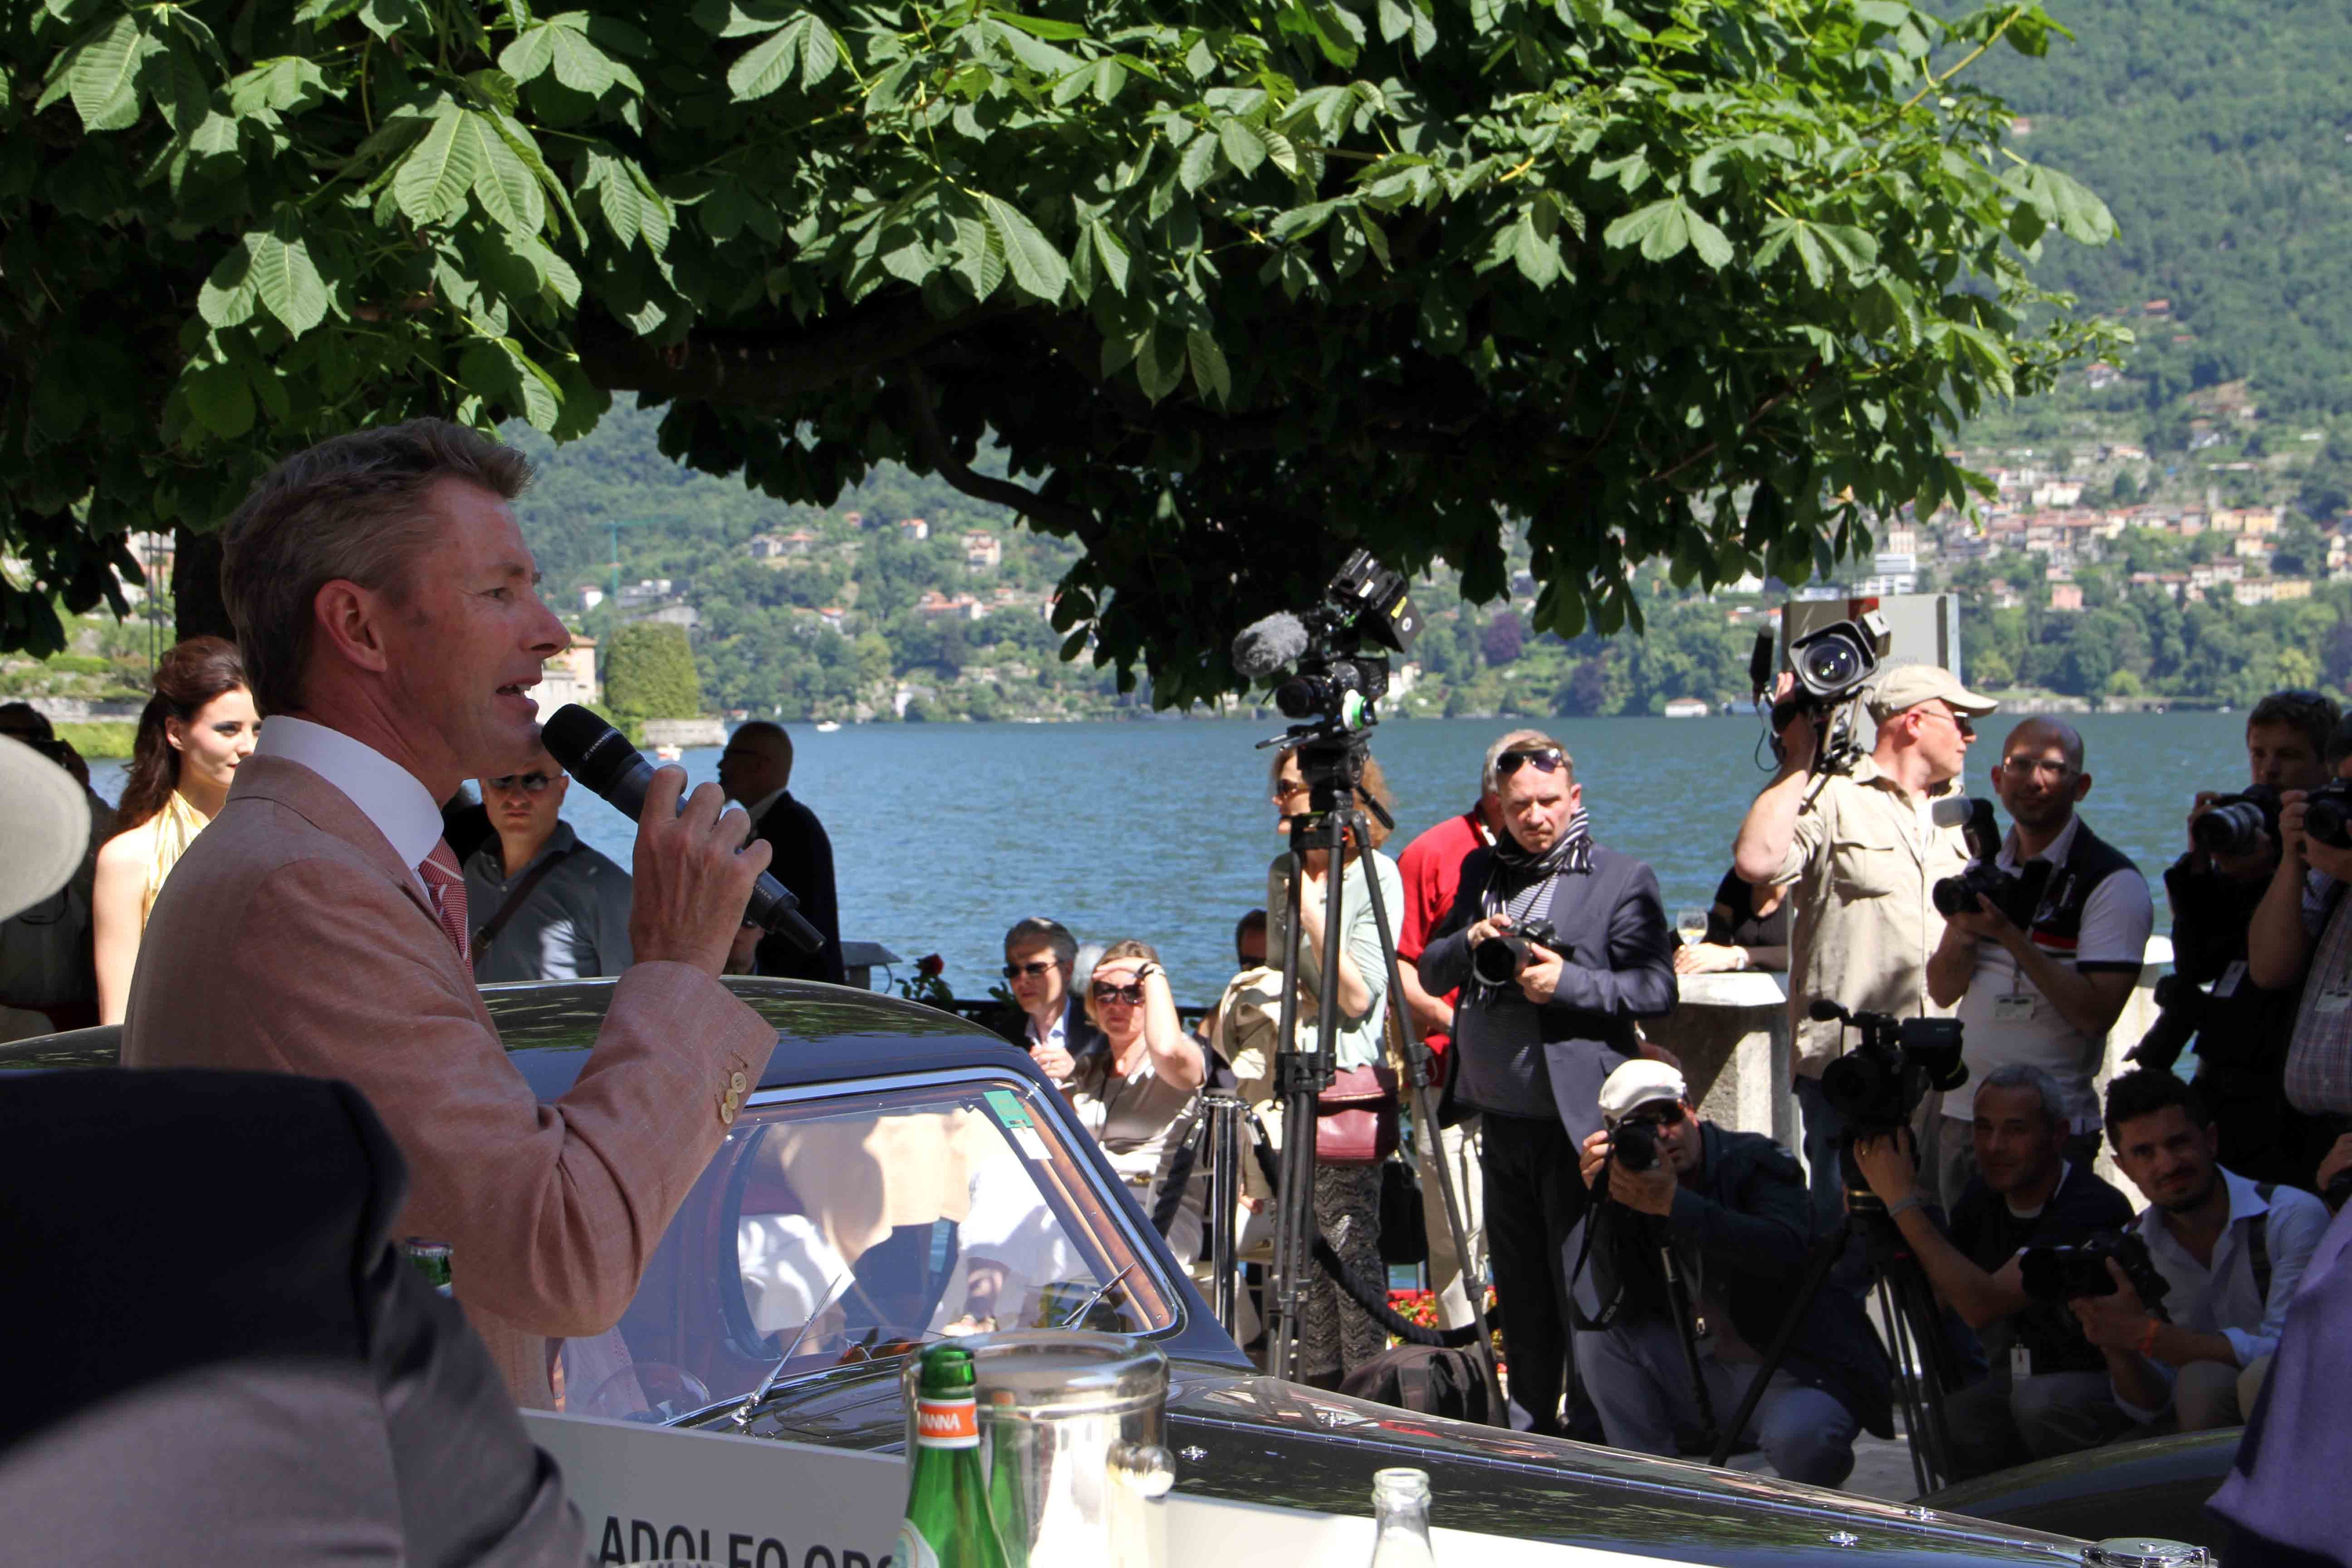 Photo Report: Watch And Car Spotting At The 2016 Concorso d'Eleganza Villa d'Este With A. Lange & Söhne Photo Report: Watch And Car Spotting At The 2016 Concorso d'Eleganza Villa d'Este With A. Lange & Söhne IMG 5467